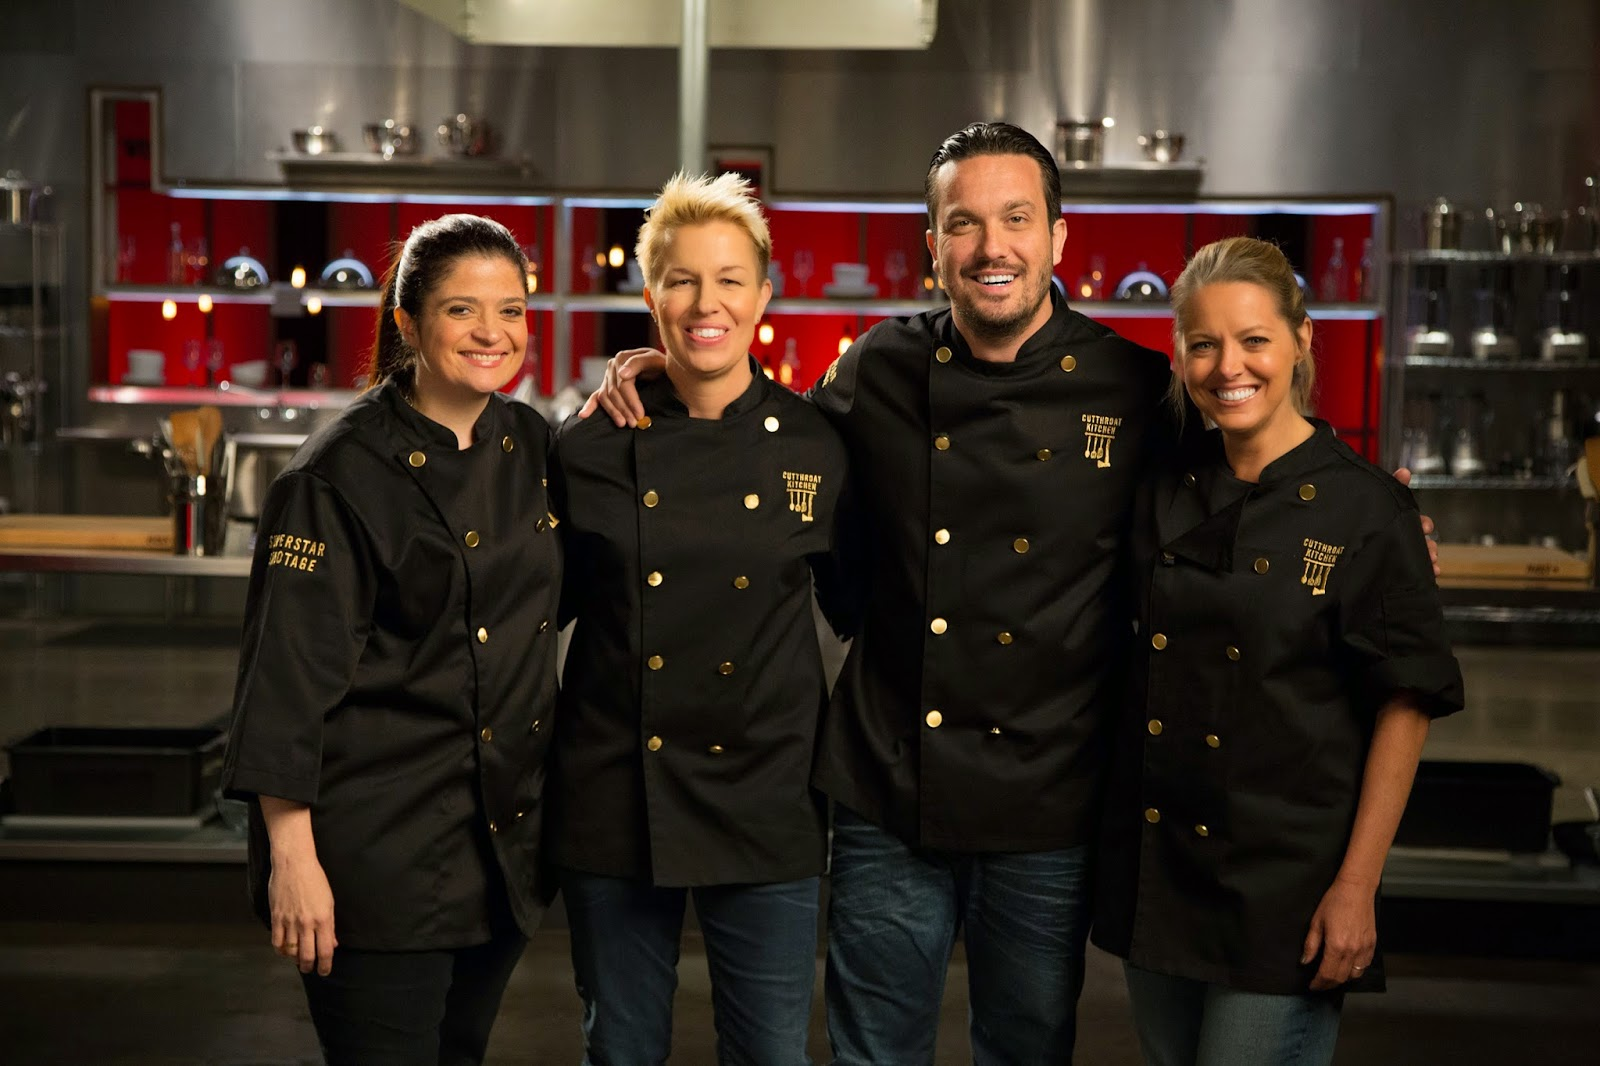 Exceptionnel Food Networku0027s October 2014 Programming Highlights